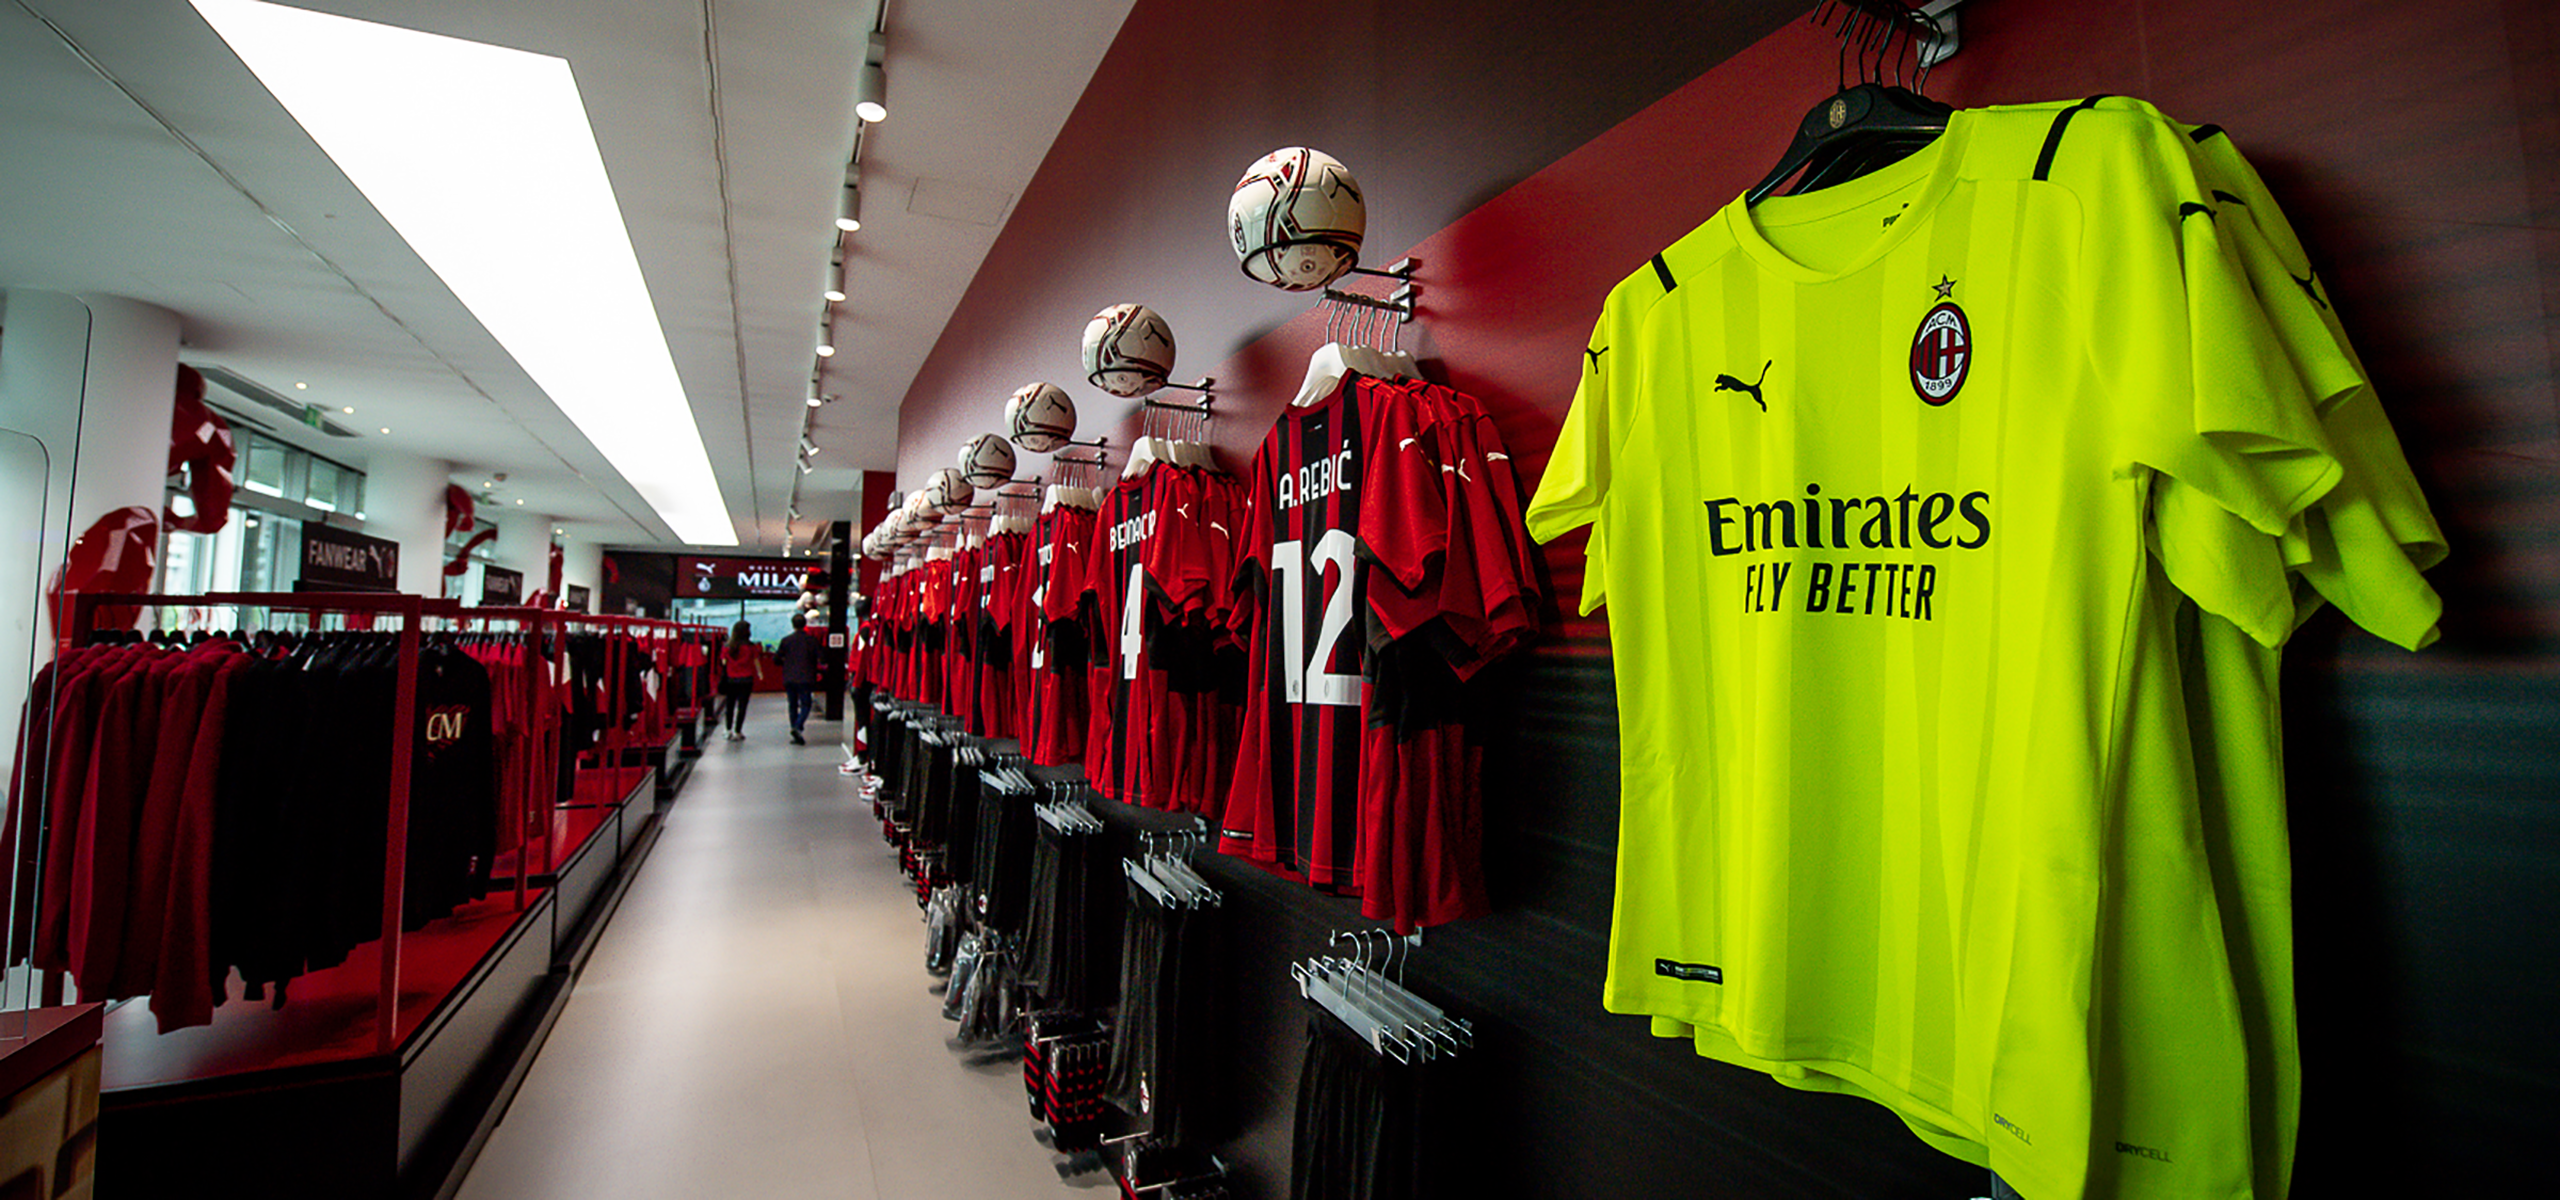 Casa Milan Store | Phone Number and Information Request